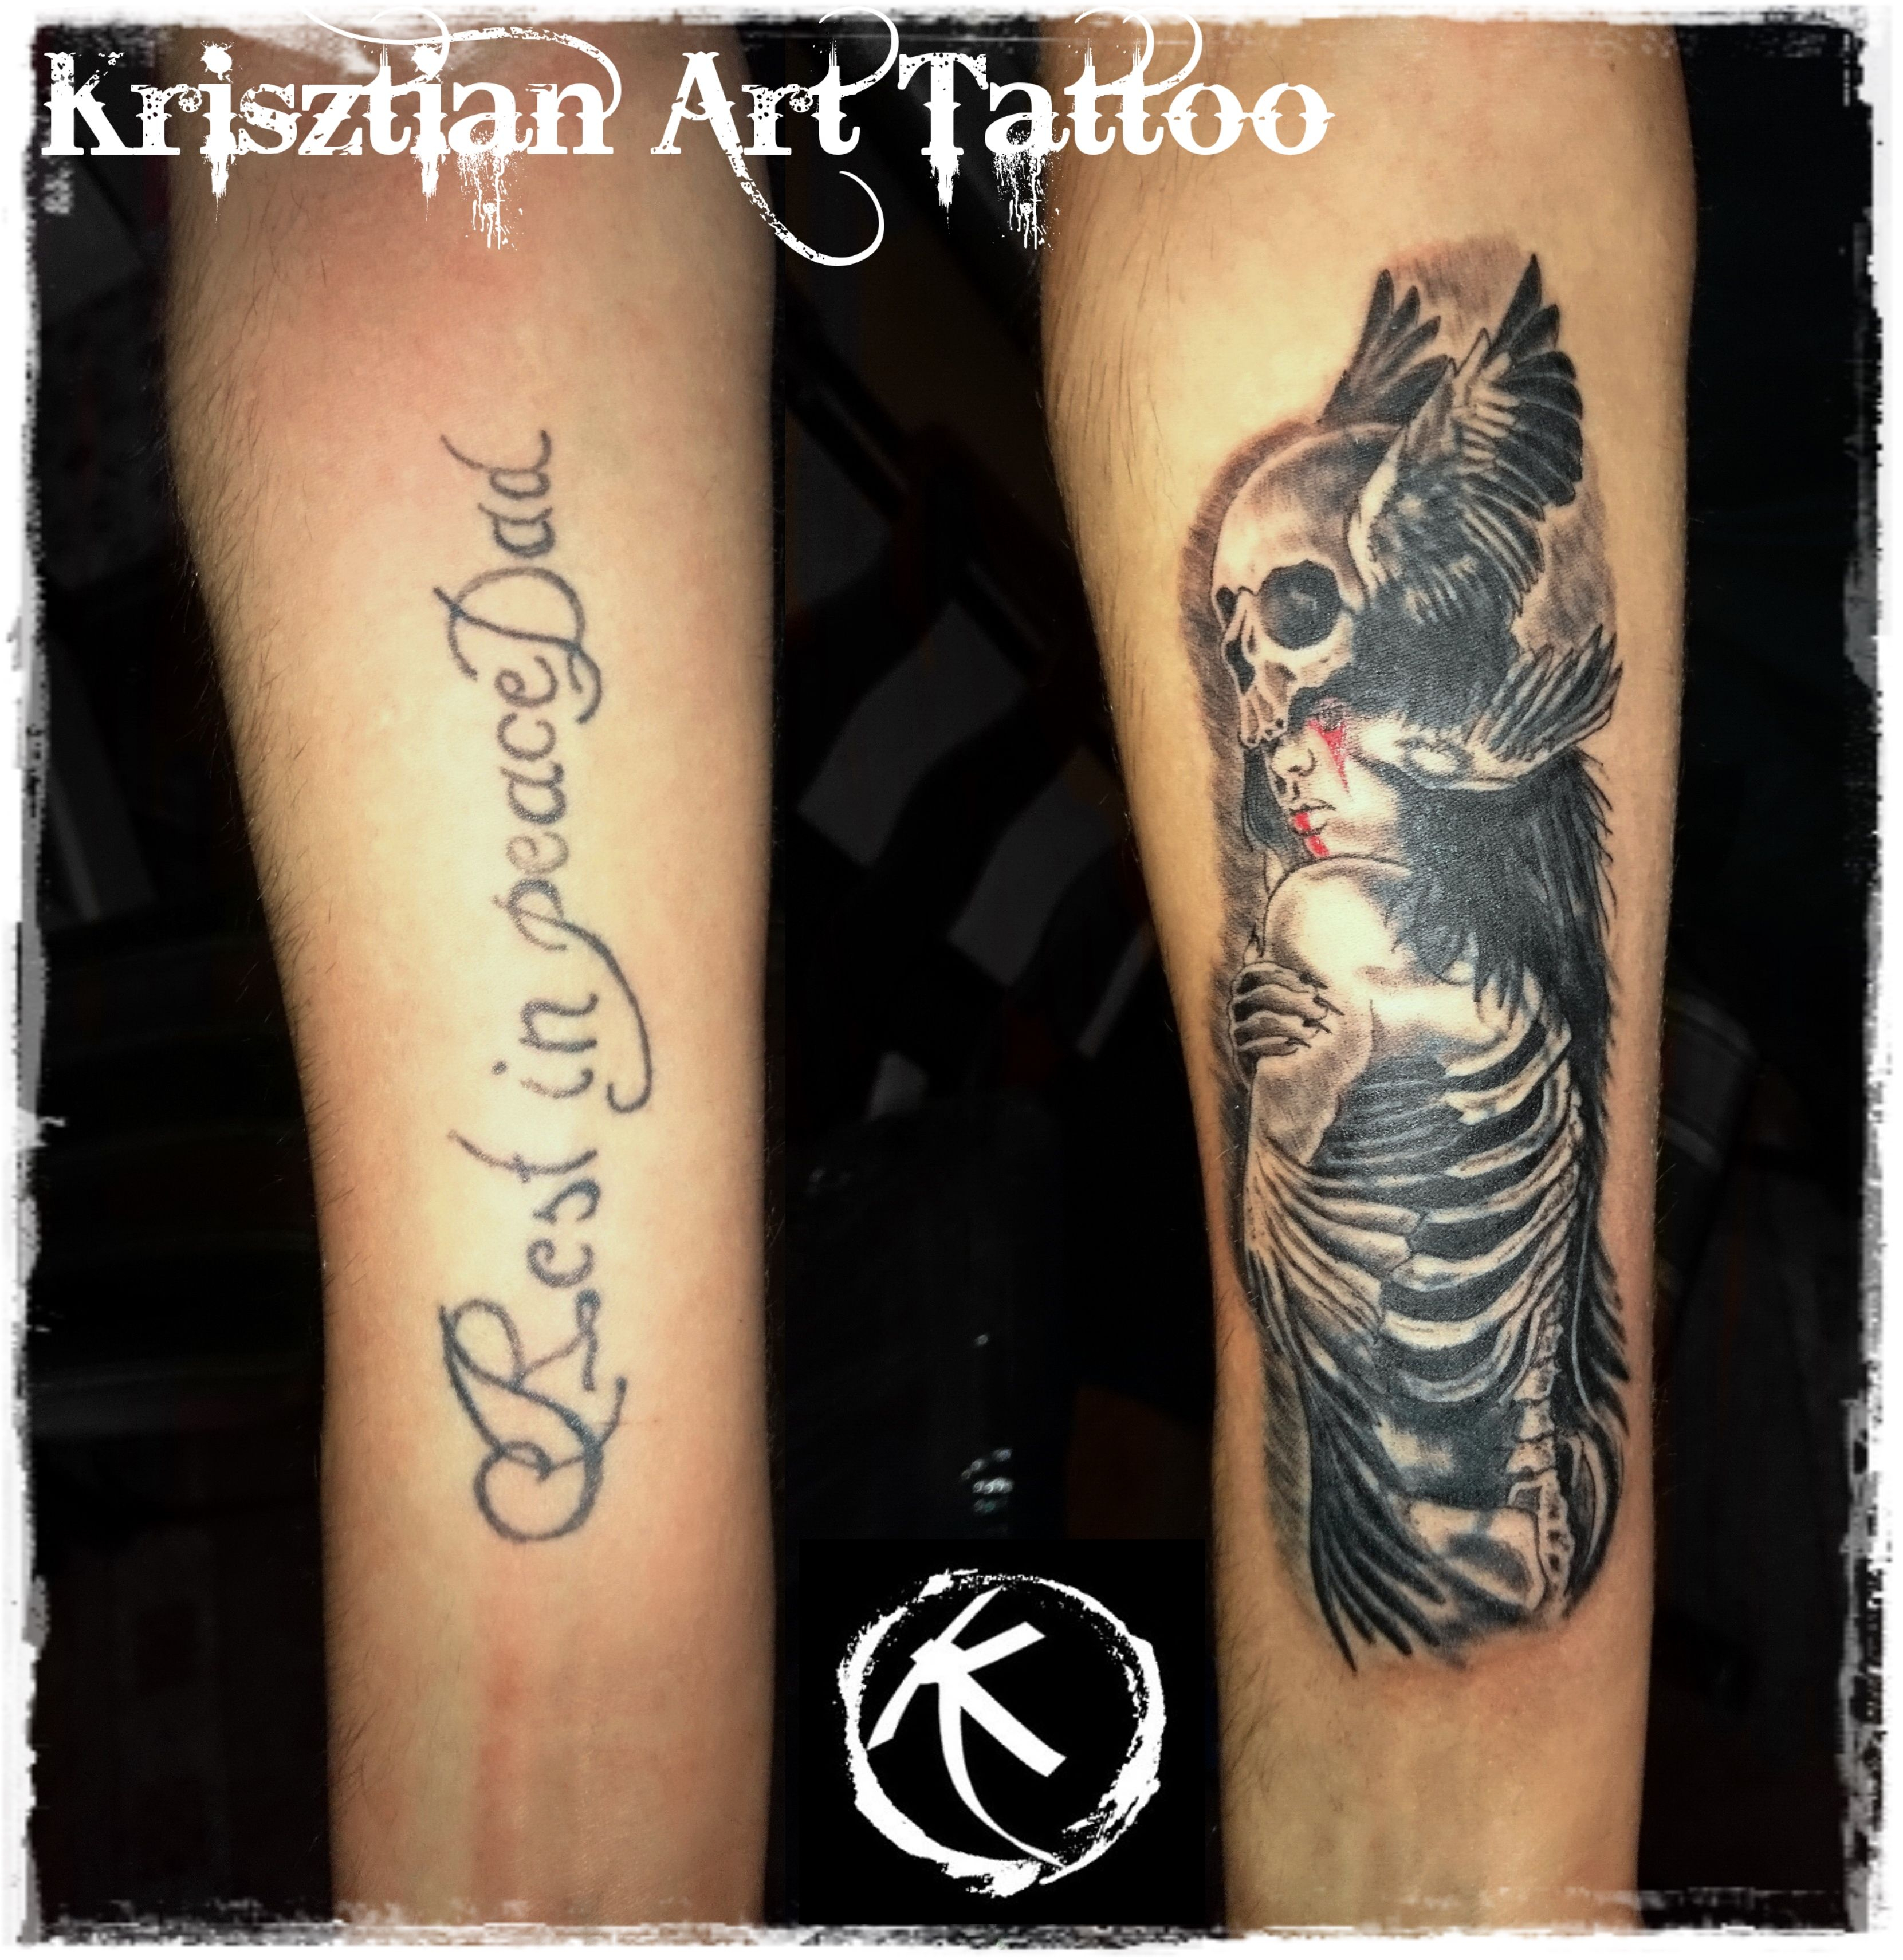 Krisztian Art Tattoo Cover Up Tattoo Forearm Skull And Girl with proportions 3322 X 3422